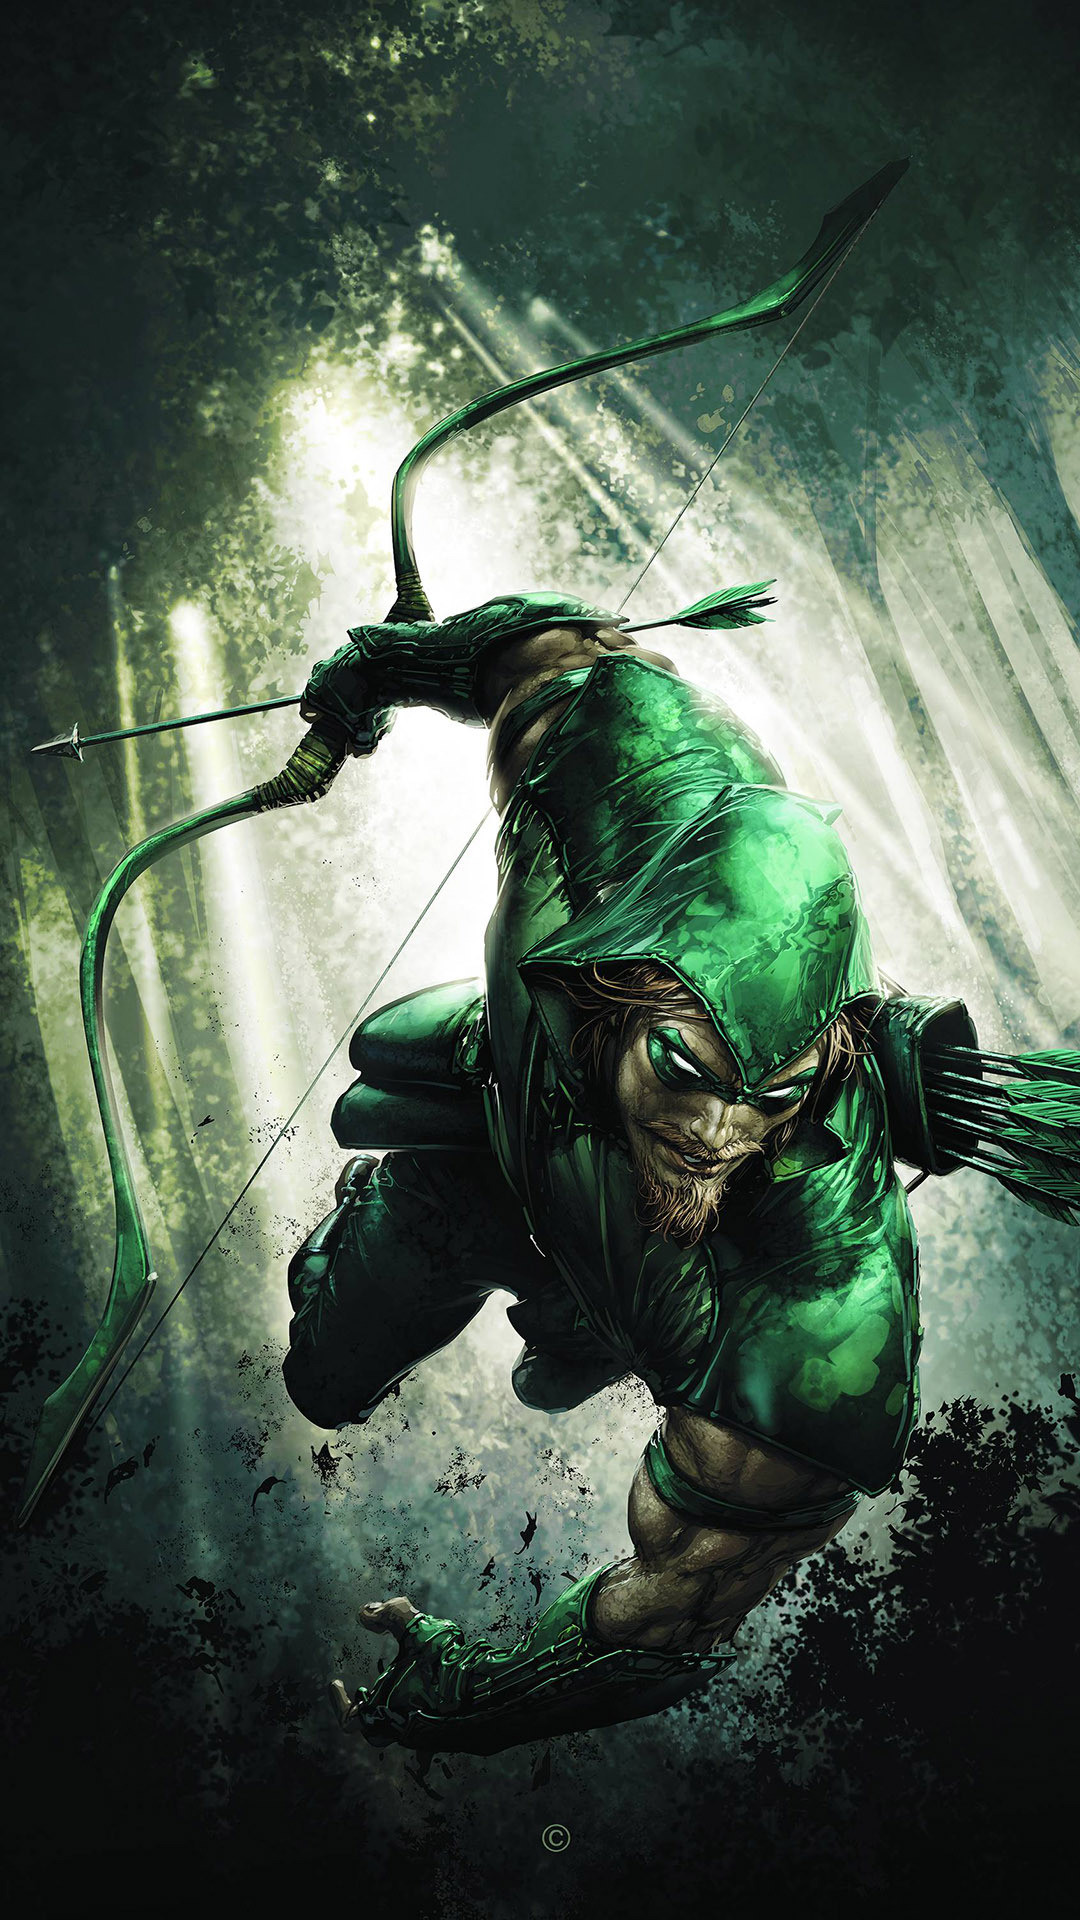 … green arrow 870151 walldevil; arrow wallpapers for iphone 7 iphone 7  plus iphone 6 plus …